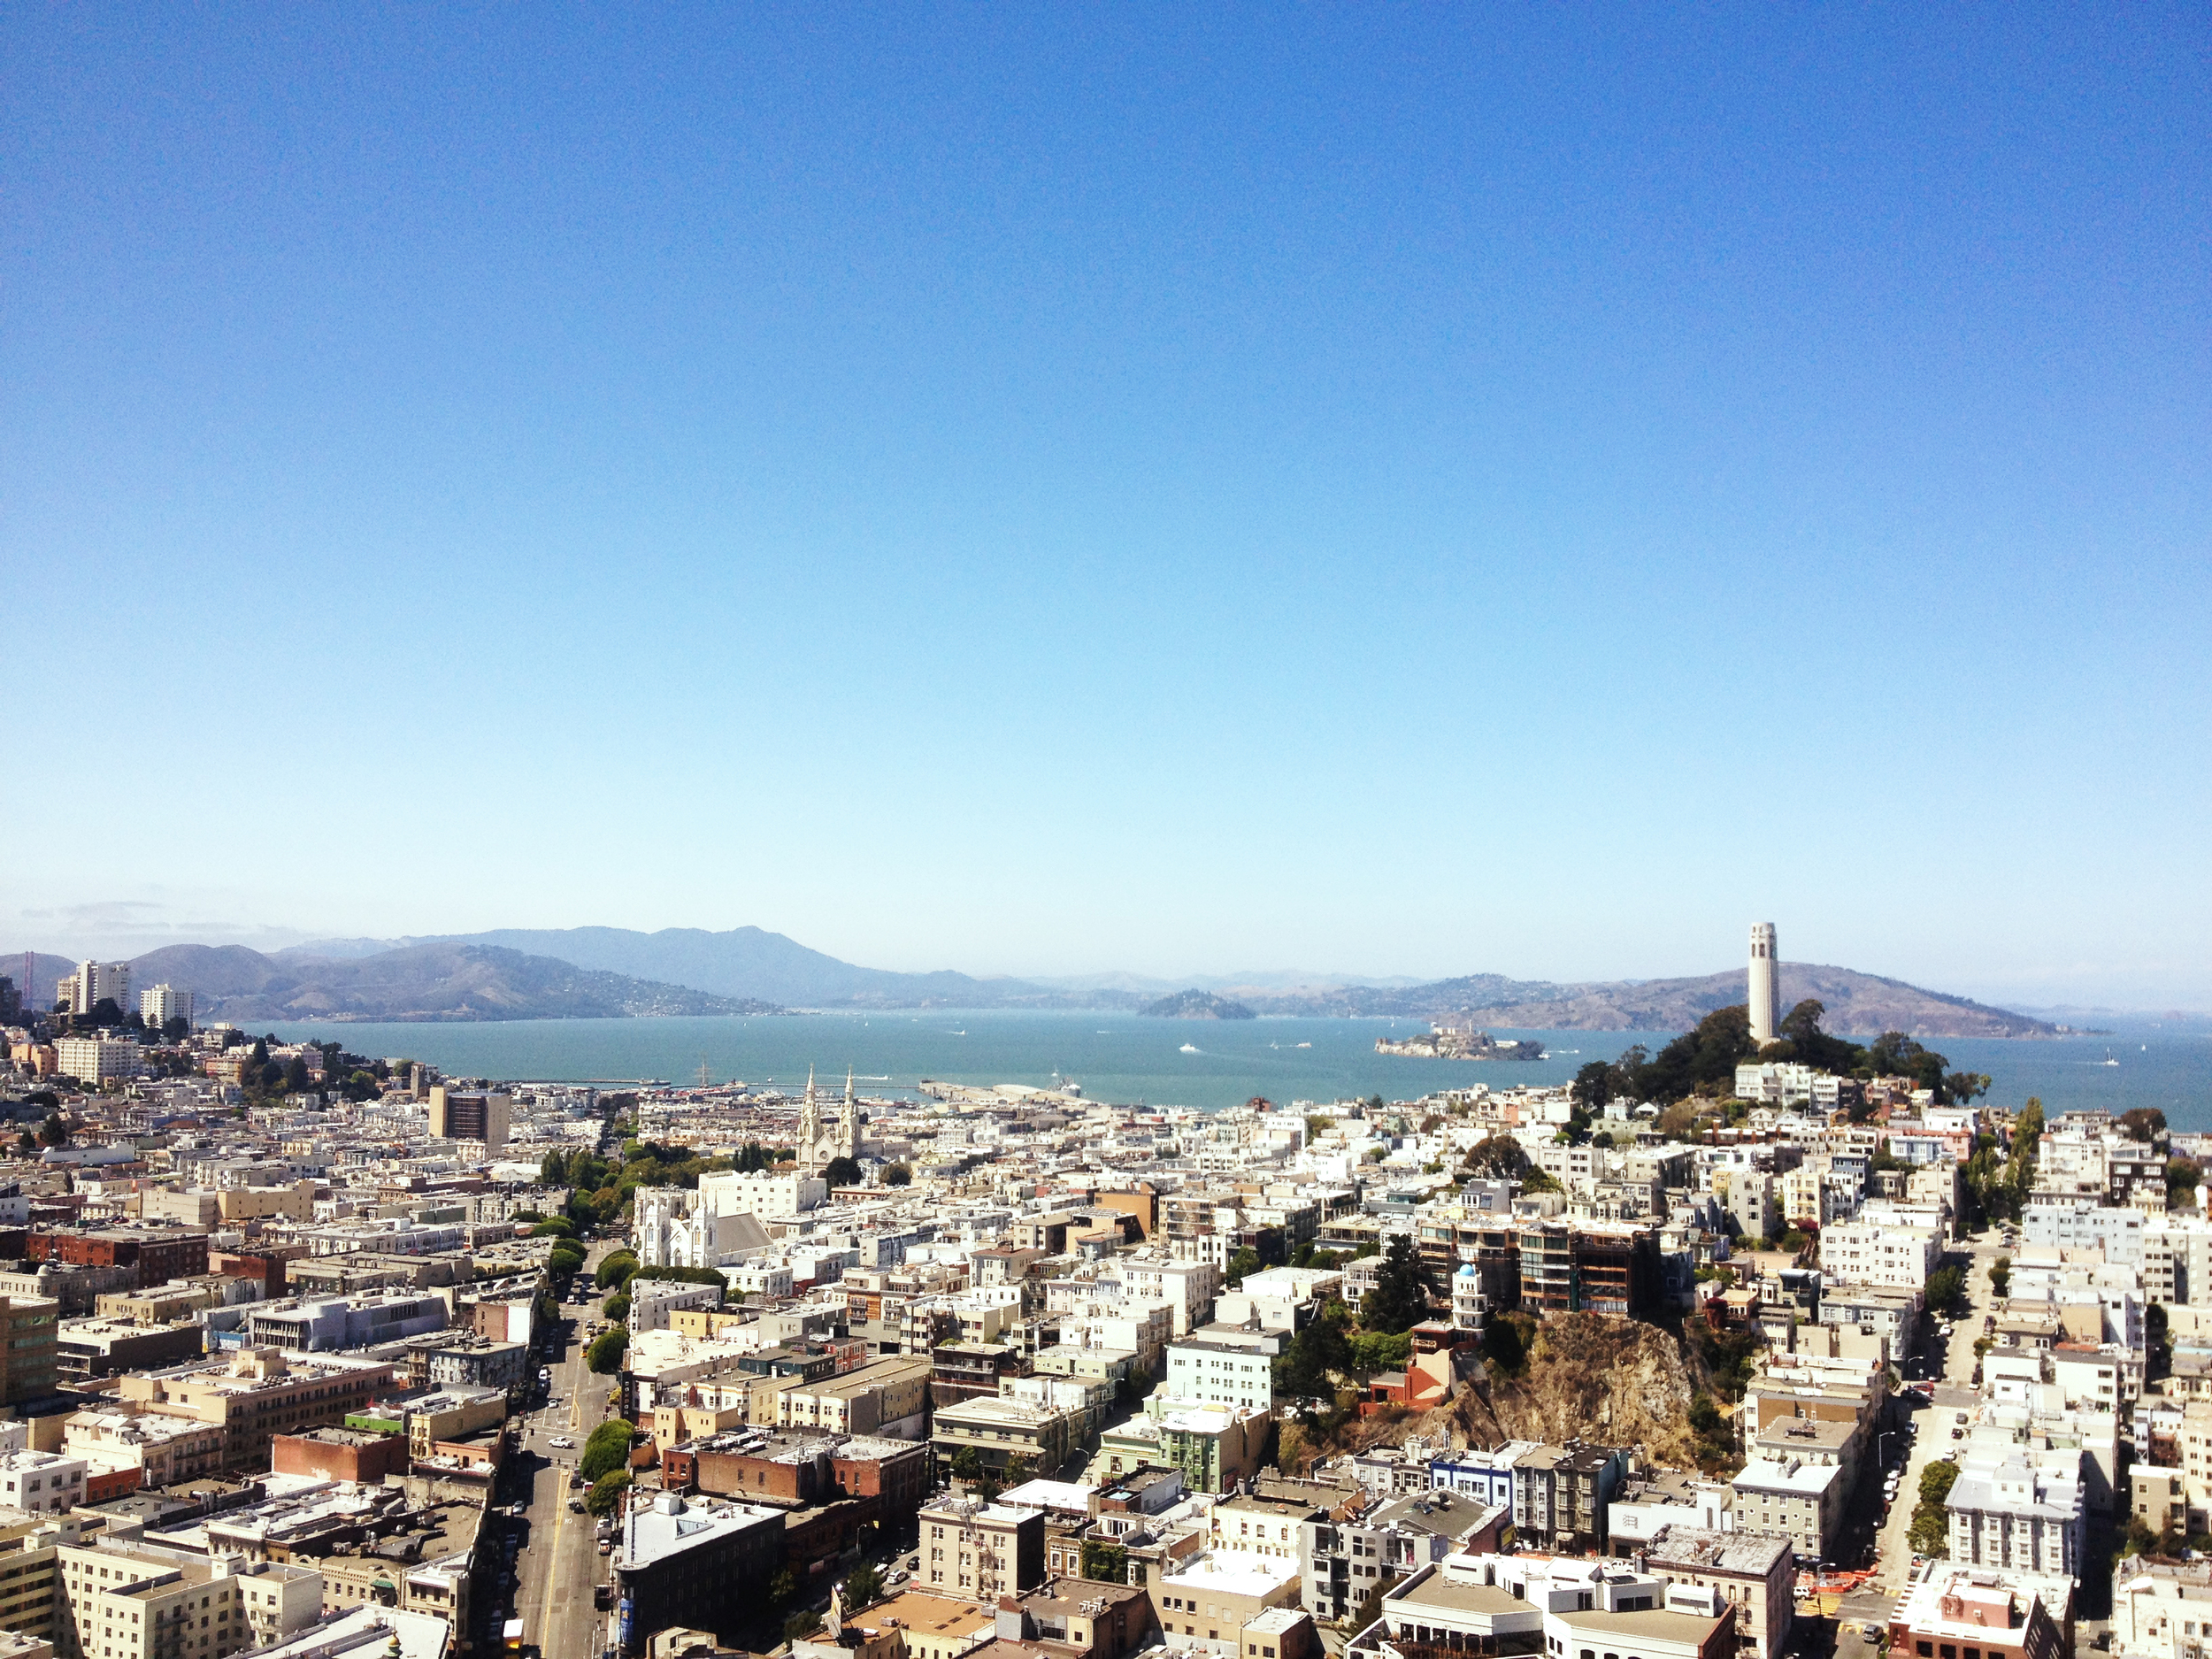 SF from Transamerica Pyramid